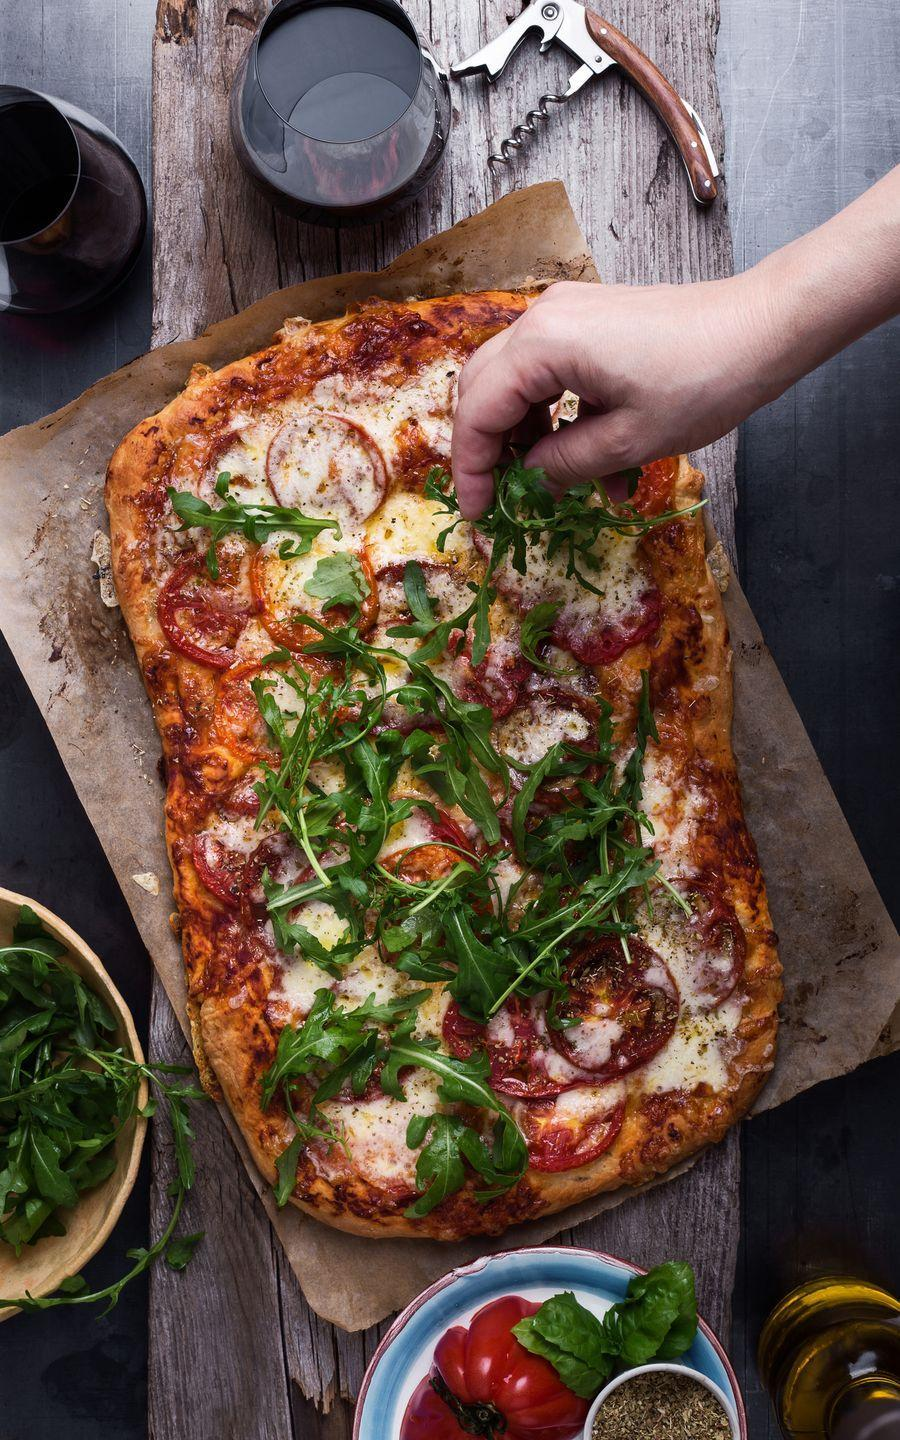 """<p>The best part about making your own pizzas is that you can go wild when it comes to toppings. No one can judge your Hawaiian pizza in the comfort of your home, right? Try this simple homemade <a href=""""https://www.countryliving.com/food-drinks/a27575518/pizza-dough-recipe/"""" rel=""""nofollow noopener"""" target=""""_blank"""" data-ylk=""""slk:pizza dough recipe"""" class=""""link rapid-noclick-resp"""">pizza dough recipe</a> for the perfect base.</p><p><a class=""""link rapid-noclick-resp"""" href=""""https://www.amazon.com/Unicook-Ceramic-Grilling-Resistant-Rectangular/dp/B06XGV3RS4/?tag=syn-yahoo-20&ascsubtag=%5Bartid%7C10050.g.30445302%5Bsrc%7Cyahoo-us"""" rel=""""nofollow noopener"""" target=""""_blank"""" data-ylk=""""slk:SHOP PIZZA STONES"""">SHOP PIZZA STONES</a></p>"""